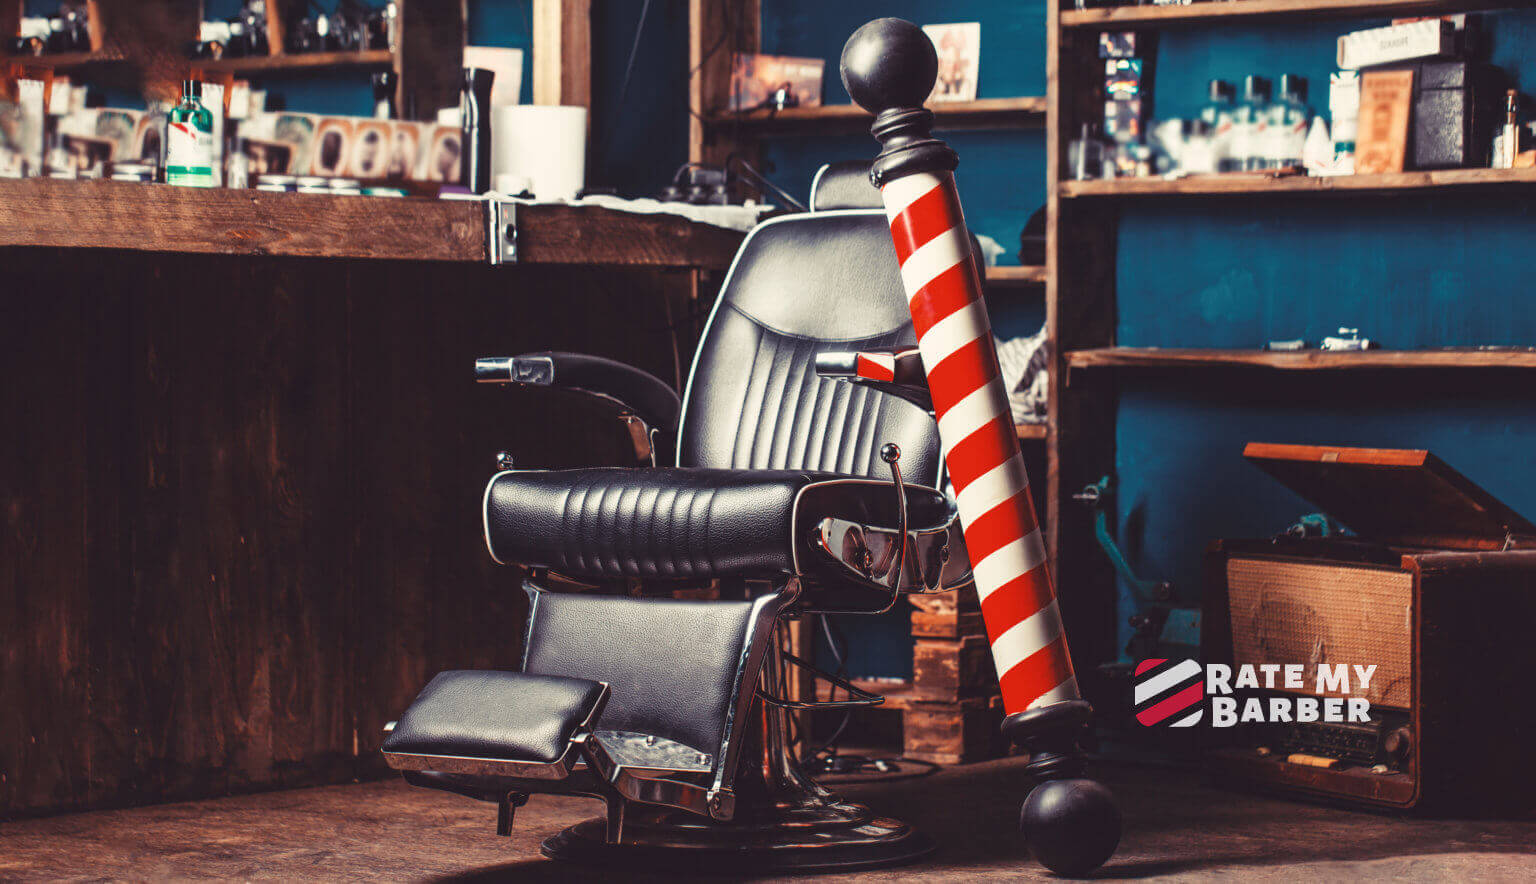 Barber-shop-Opening-1536x884